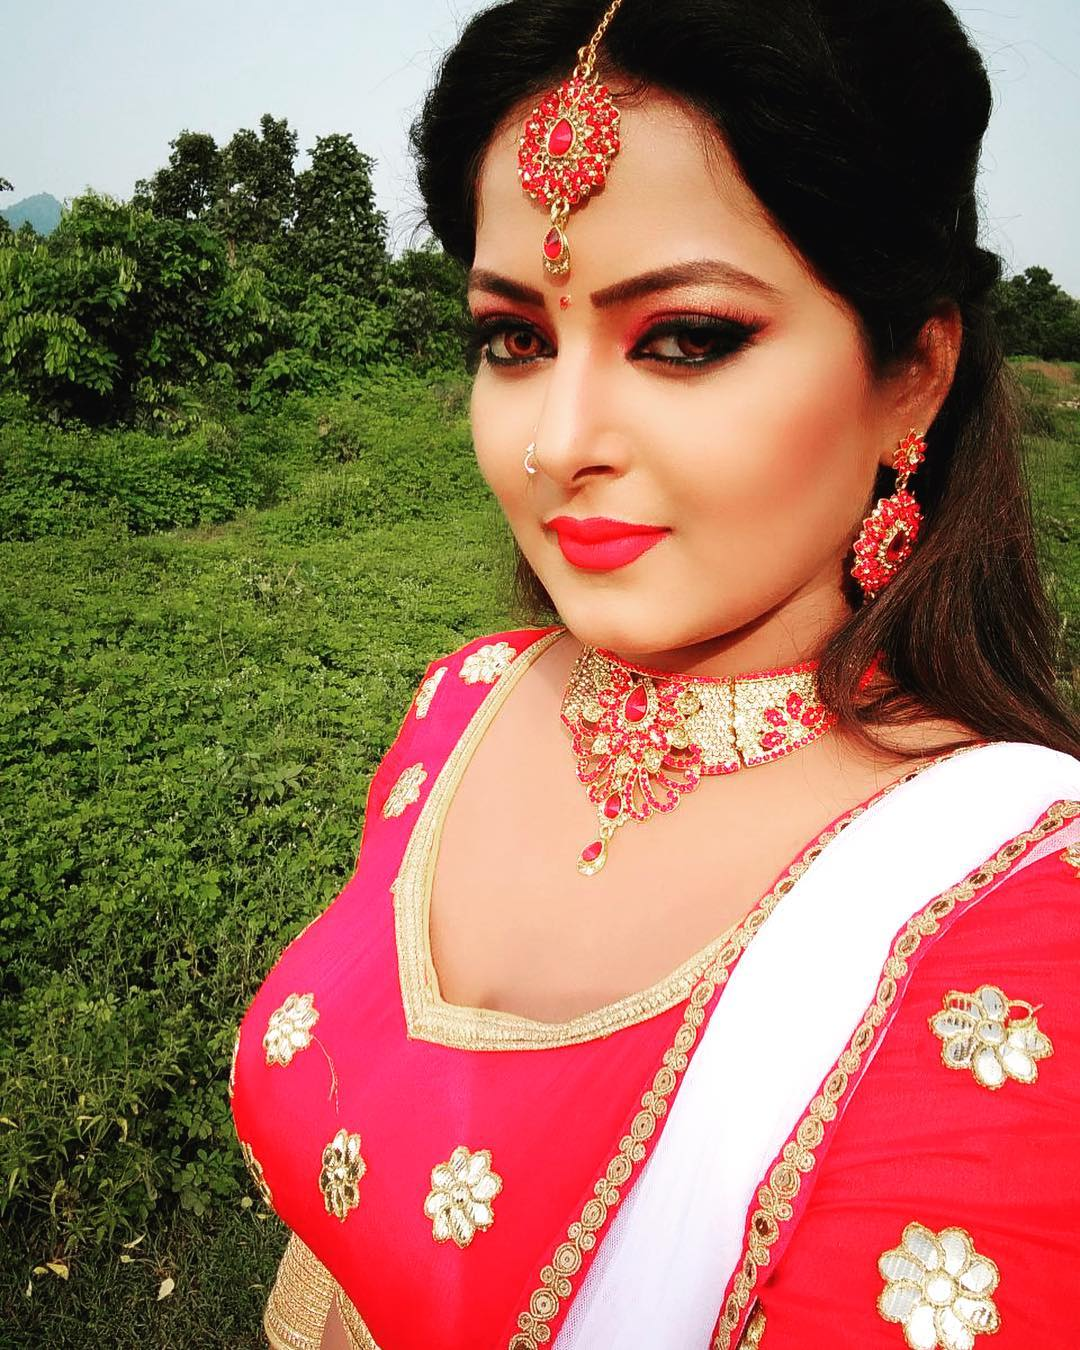 Top 10 Hottest Bhojpuri Actress With Photos  Bhojpuri -1829